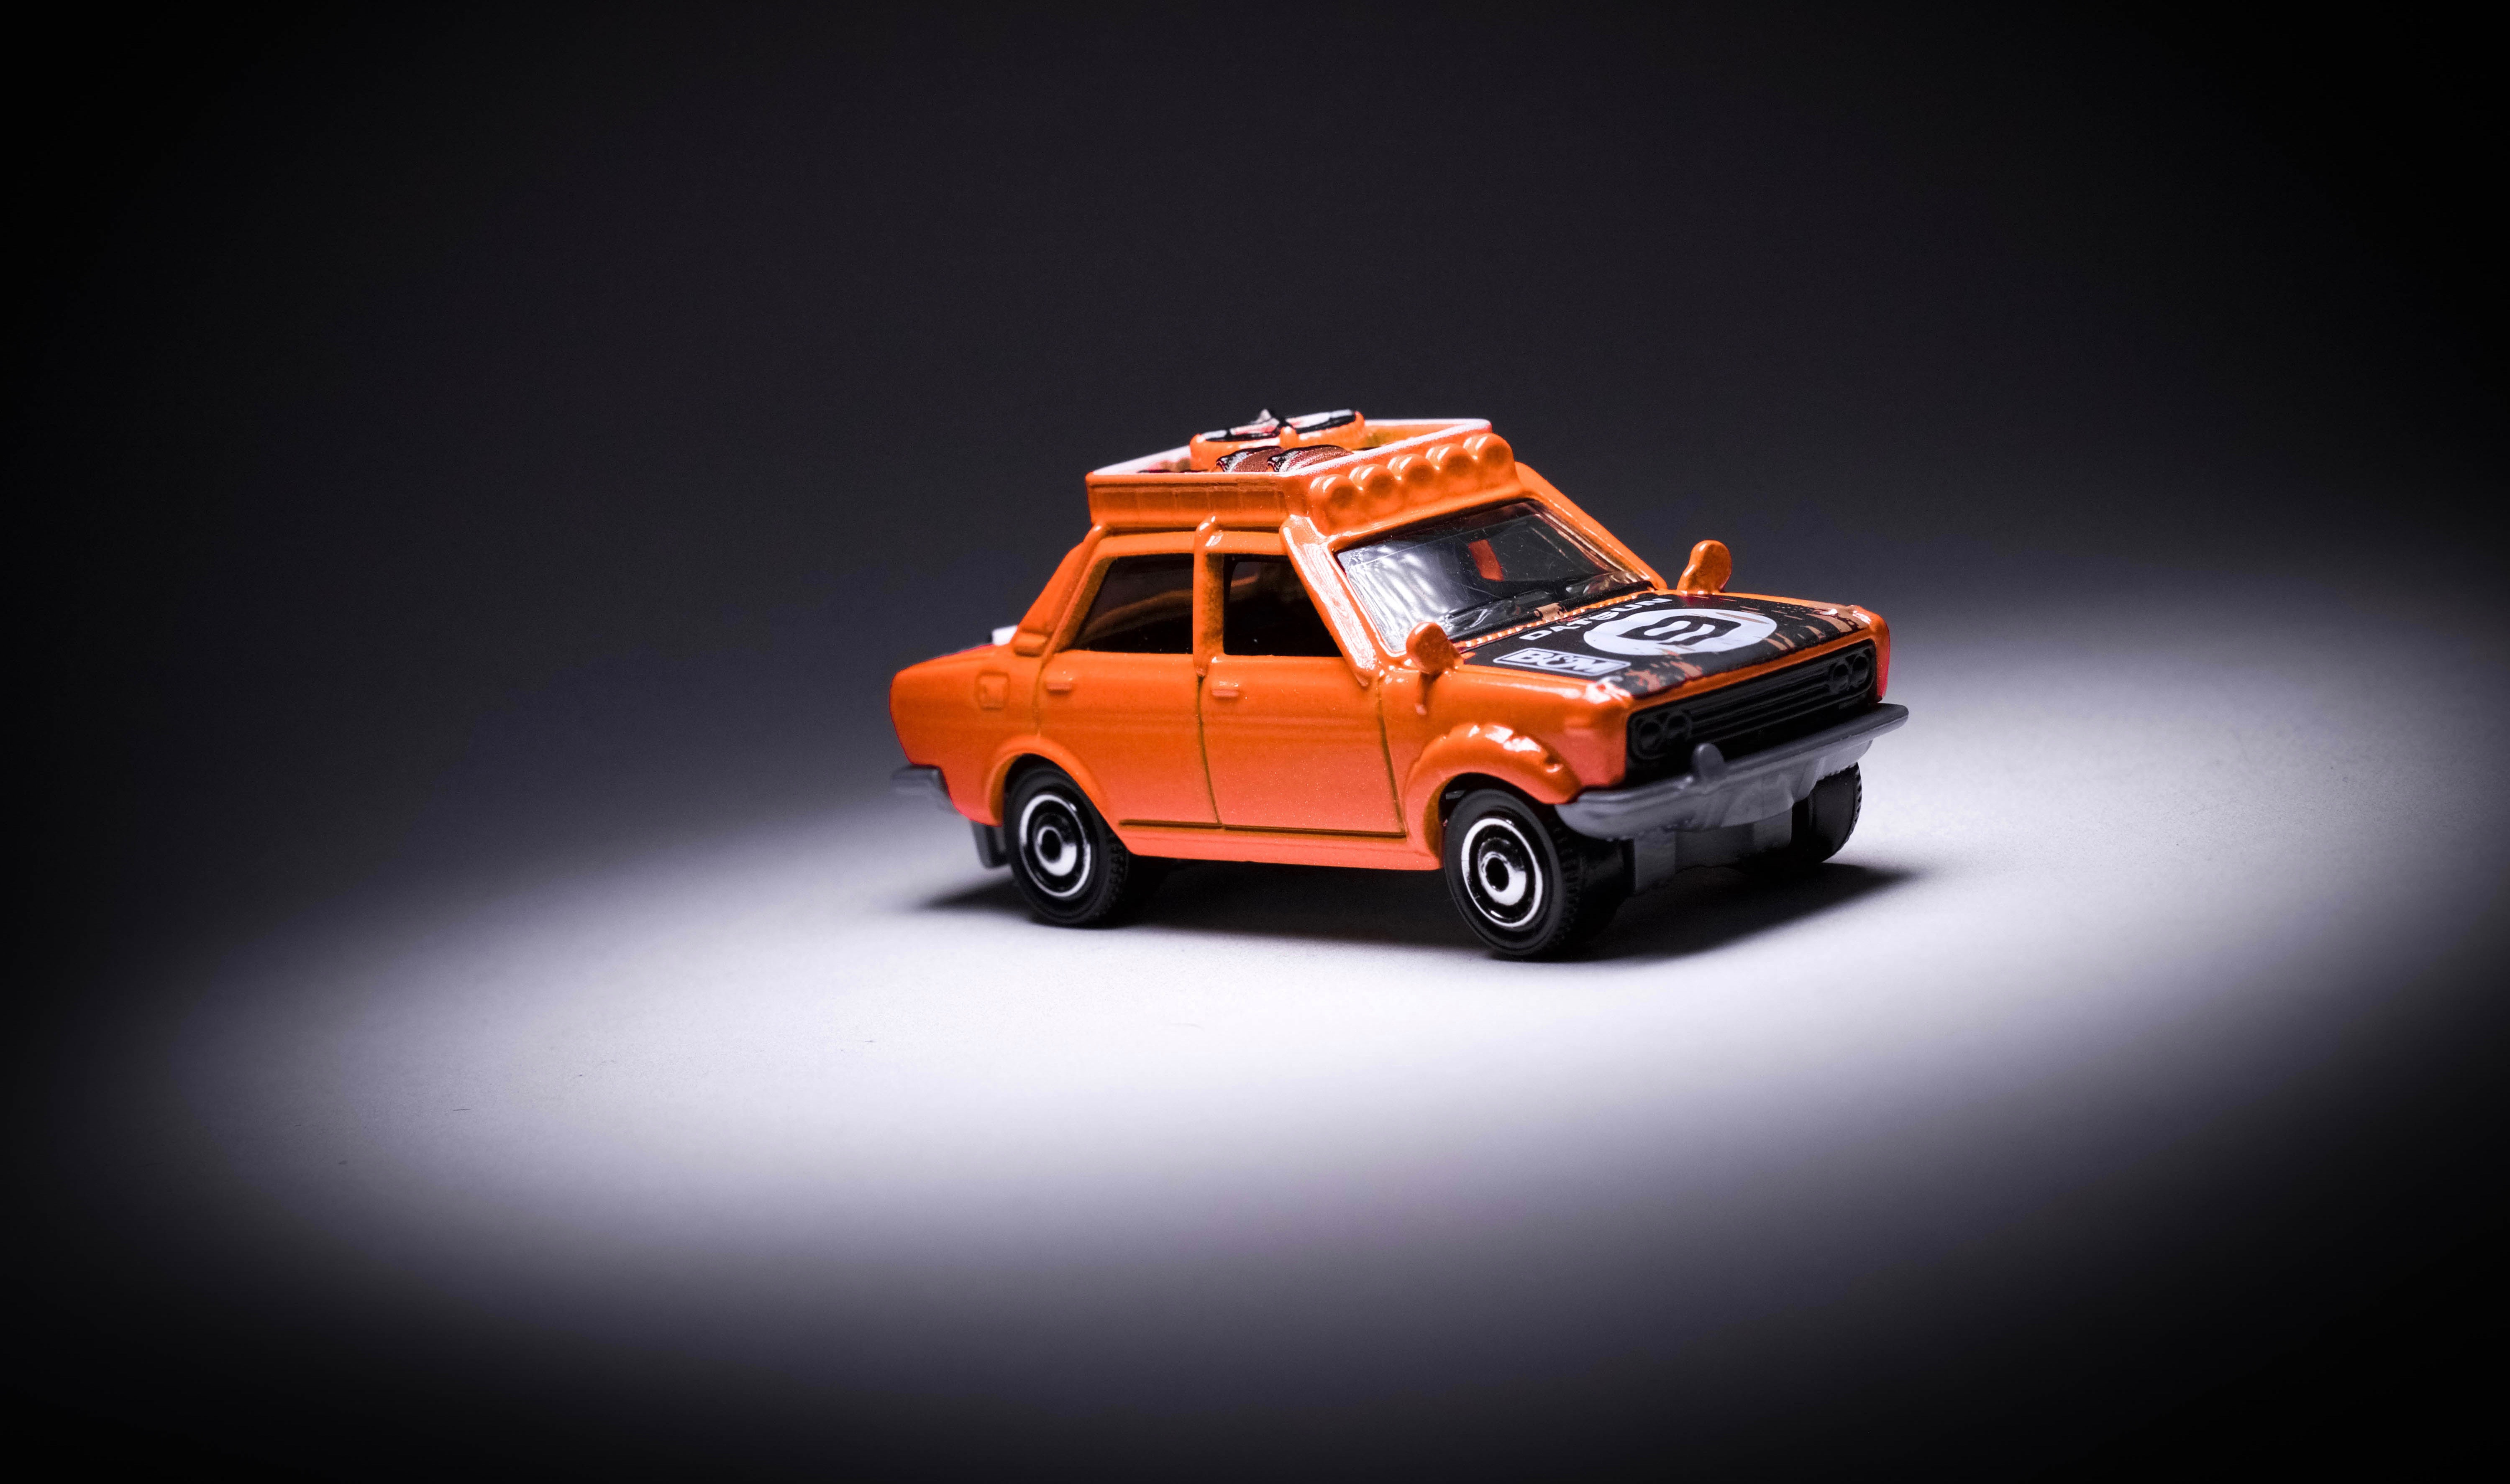 The 2017 Matchbox 70 Datsun 510 Is Ready To Roll Thelamleygroup Decal Hot Wheels Wagon Japan Histori Call It A Rally Which Has Rich Racing Heritage But Added Its Own Touch By Giving Dakar Look With Roof Rack Full Of